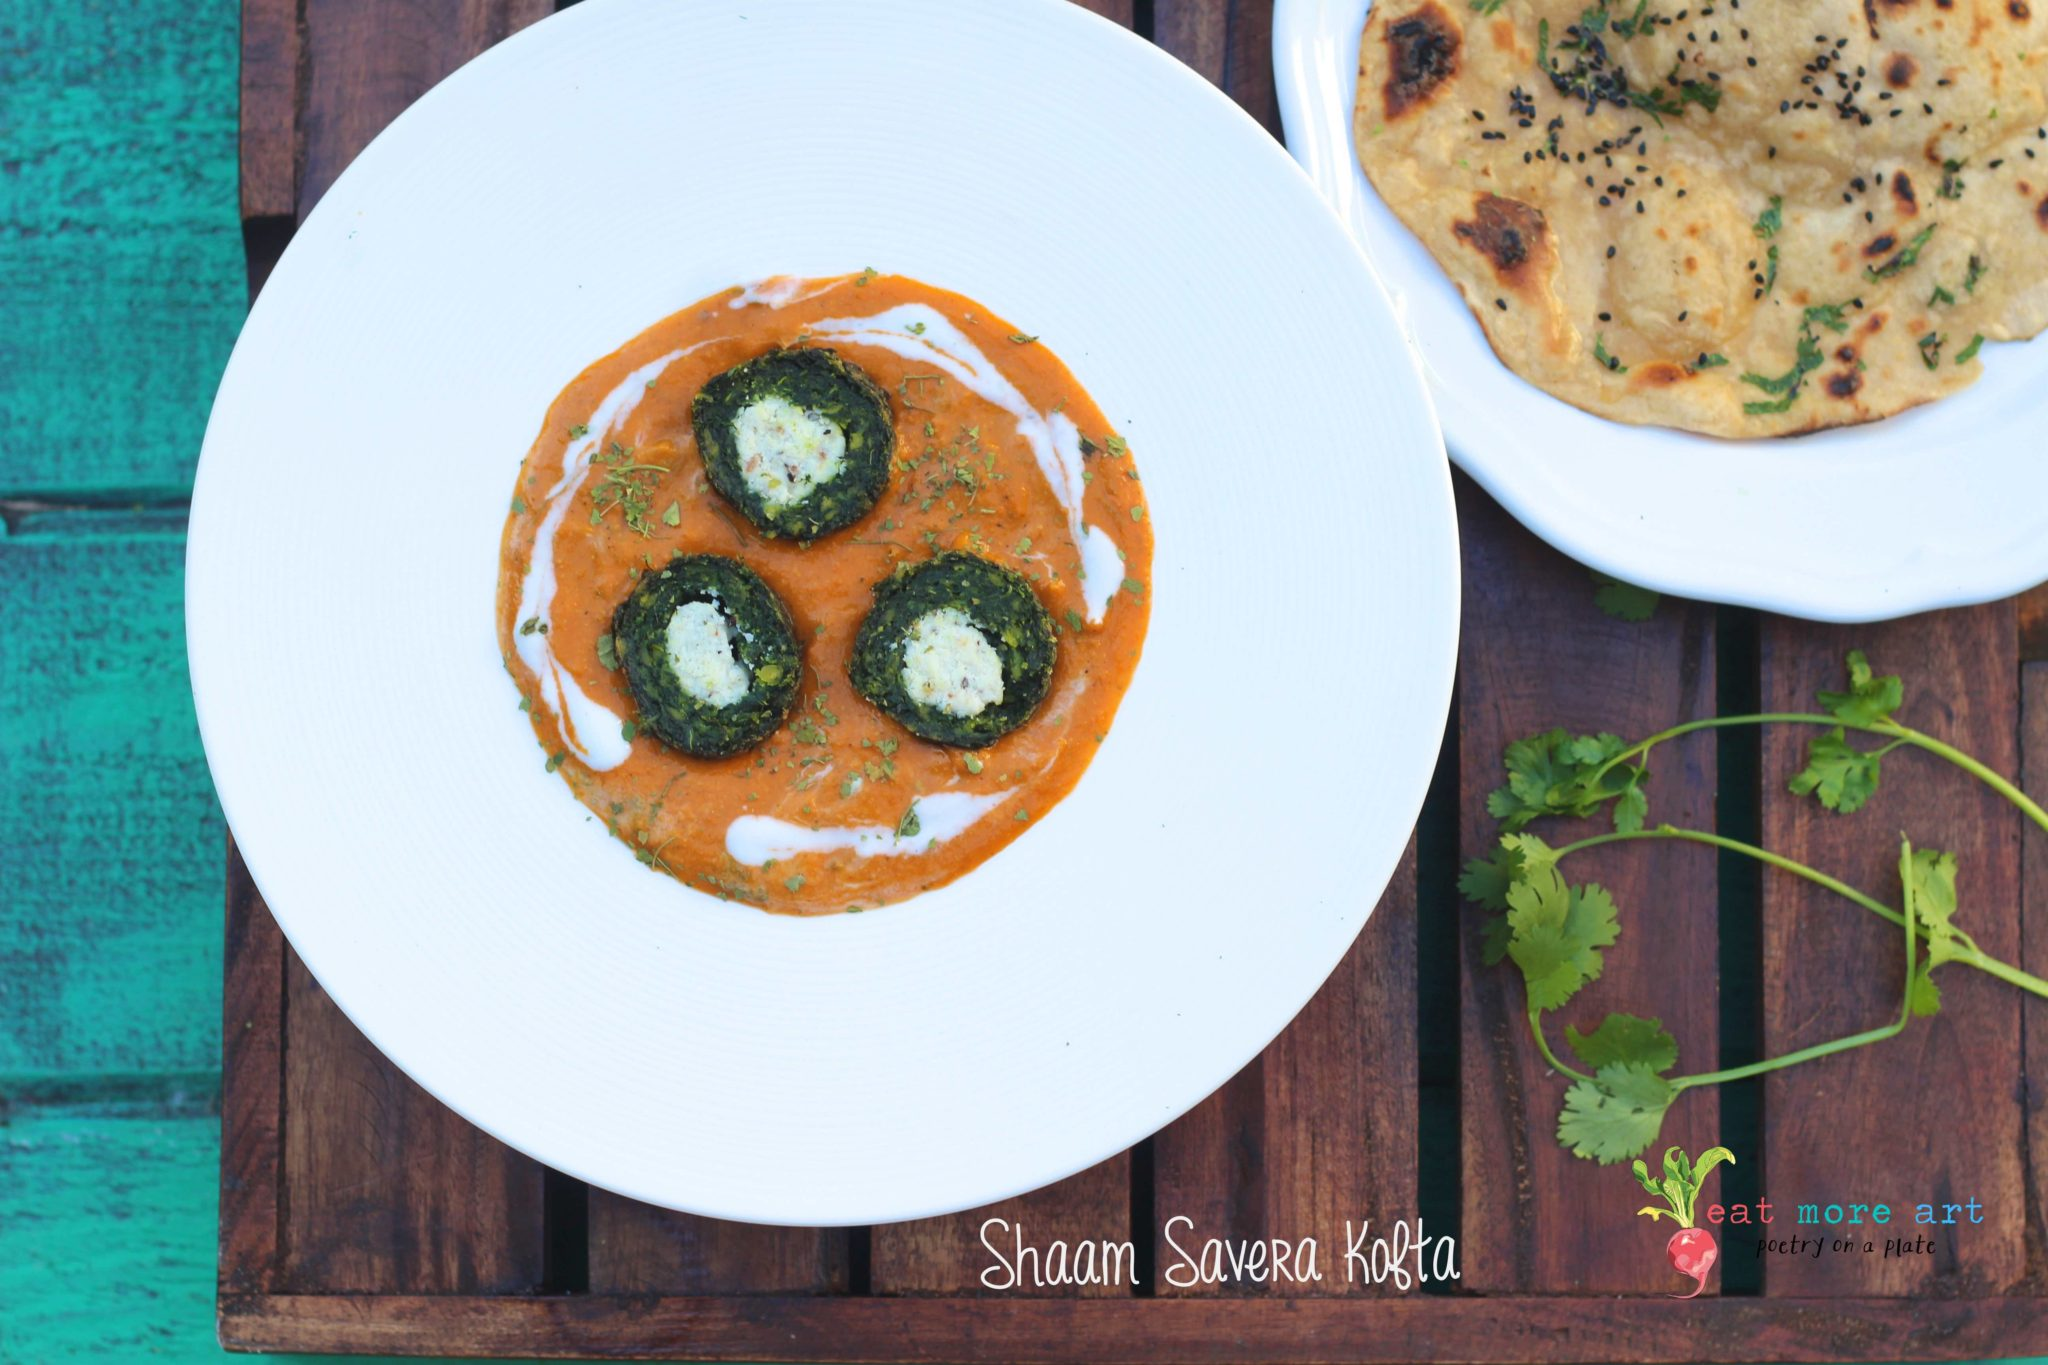 A overhaad shot of plate of green spinach kofta with cut in half with white panner in center in orange color gravy served with a side of roti with teal color pool background